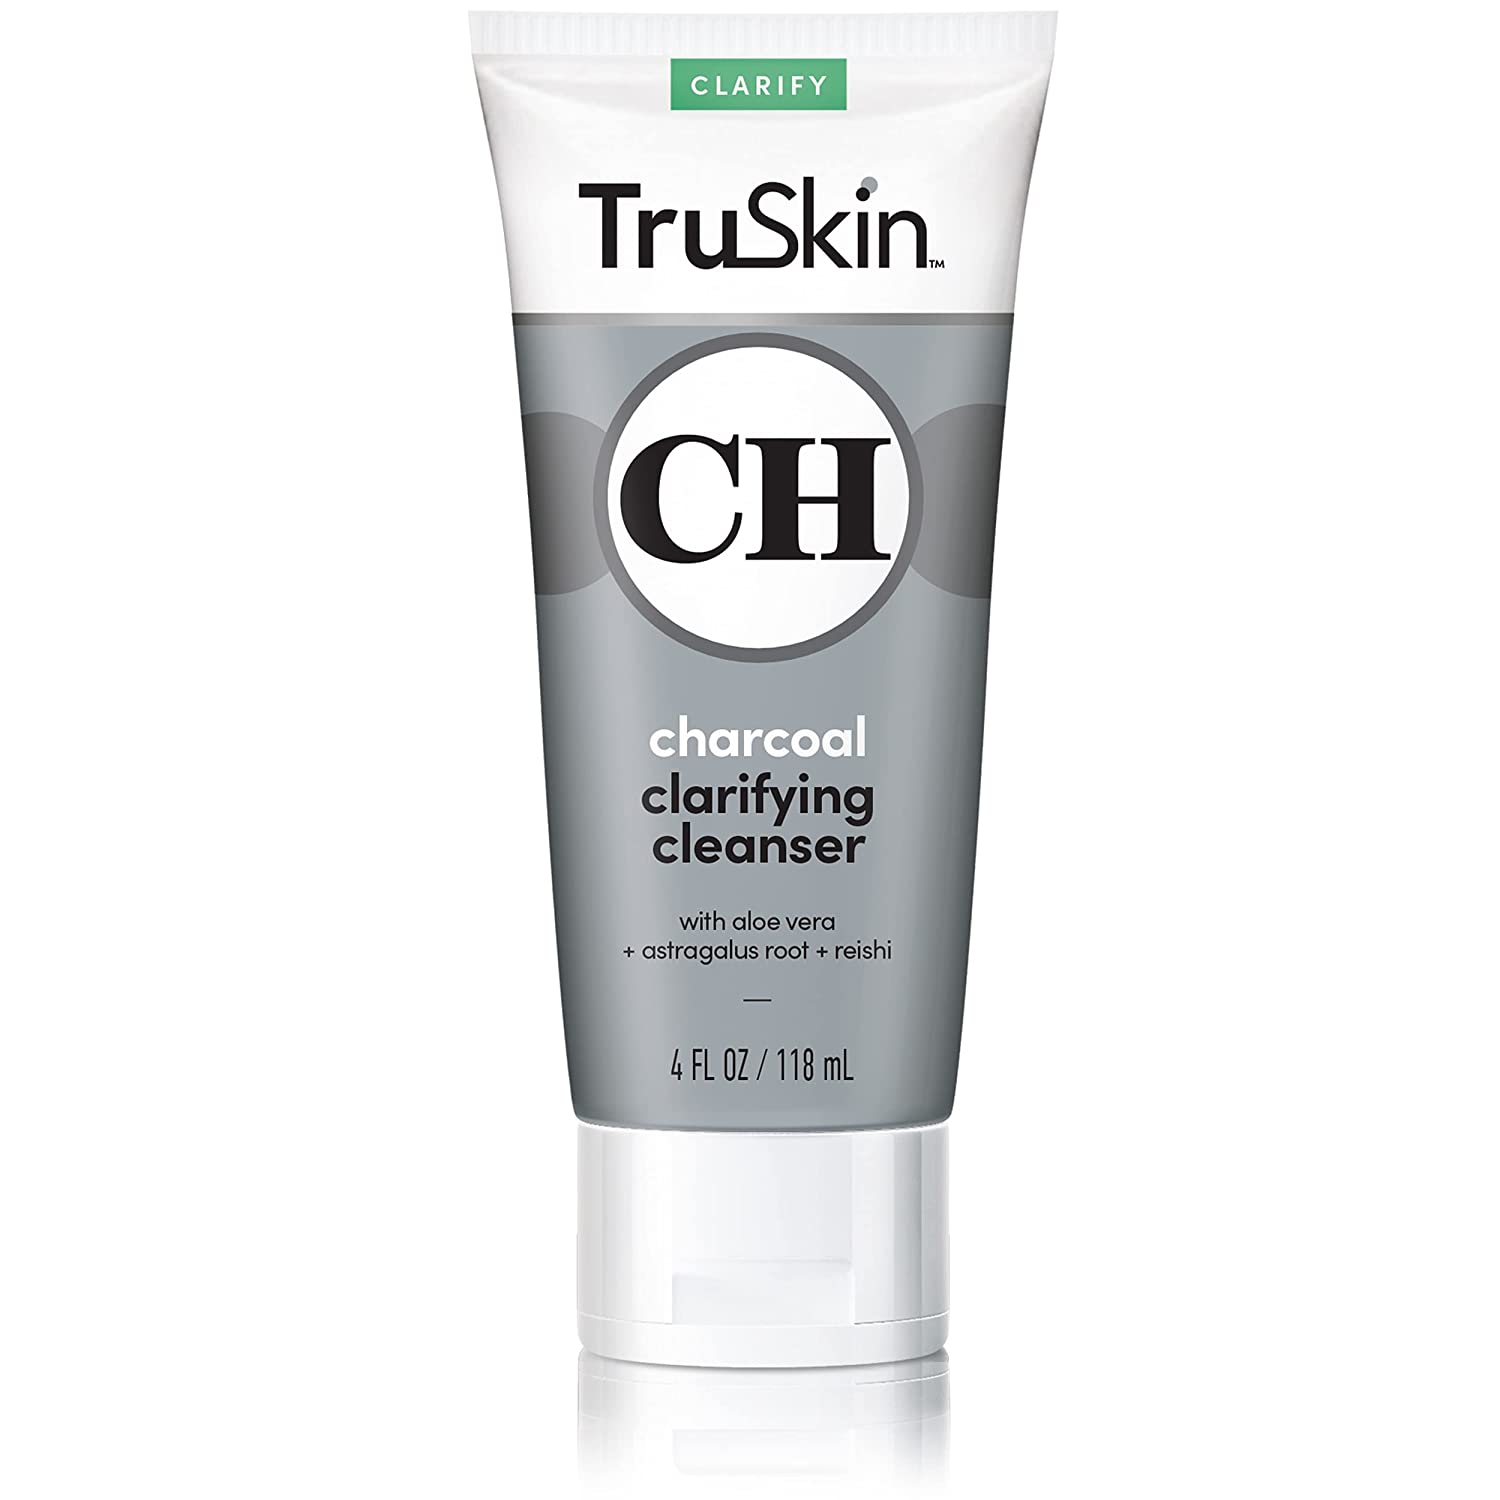 TruSkin Charcoal Face Wash Anti Cleanser Facial Acti with Aging Max 75% OFF Max 77% OFF